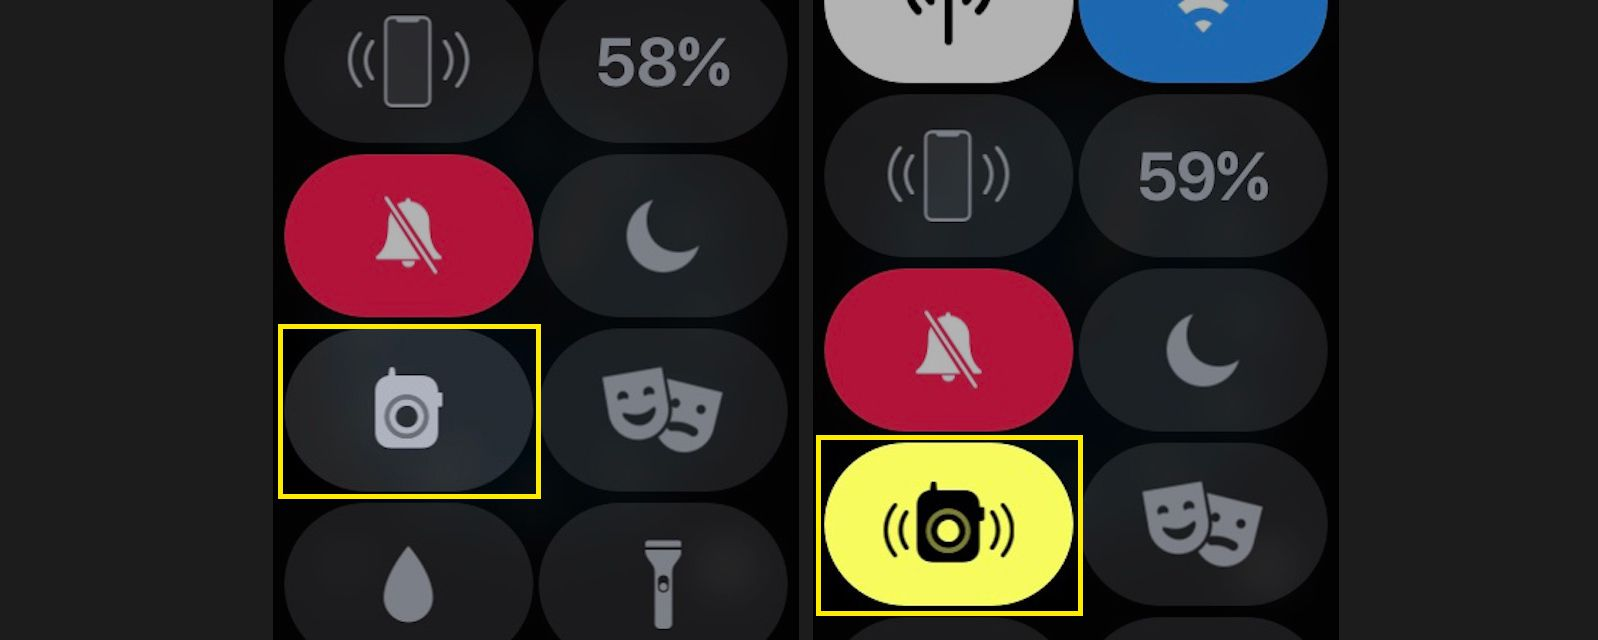 Tap the Walkie Talkie to set your walkie-talkie availability on or off.